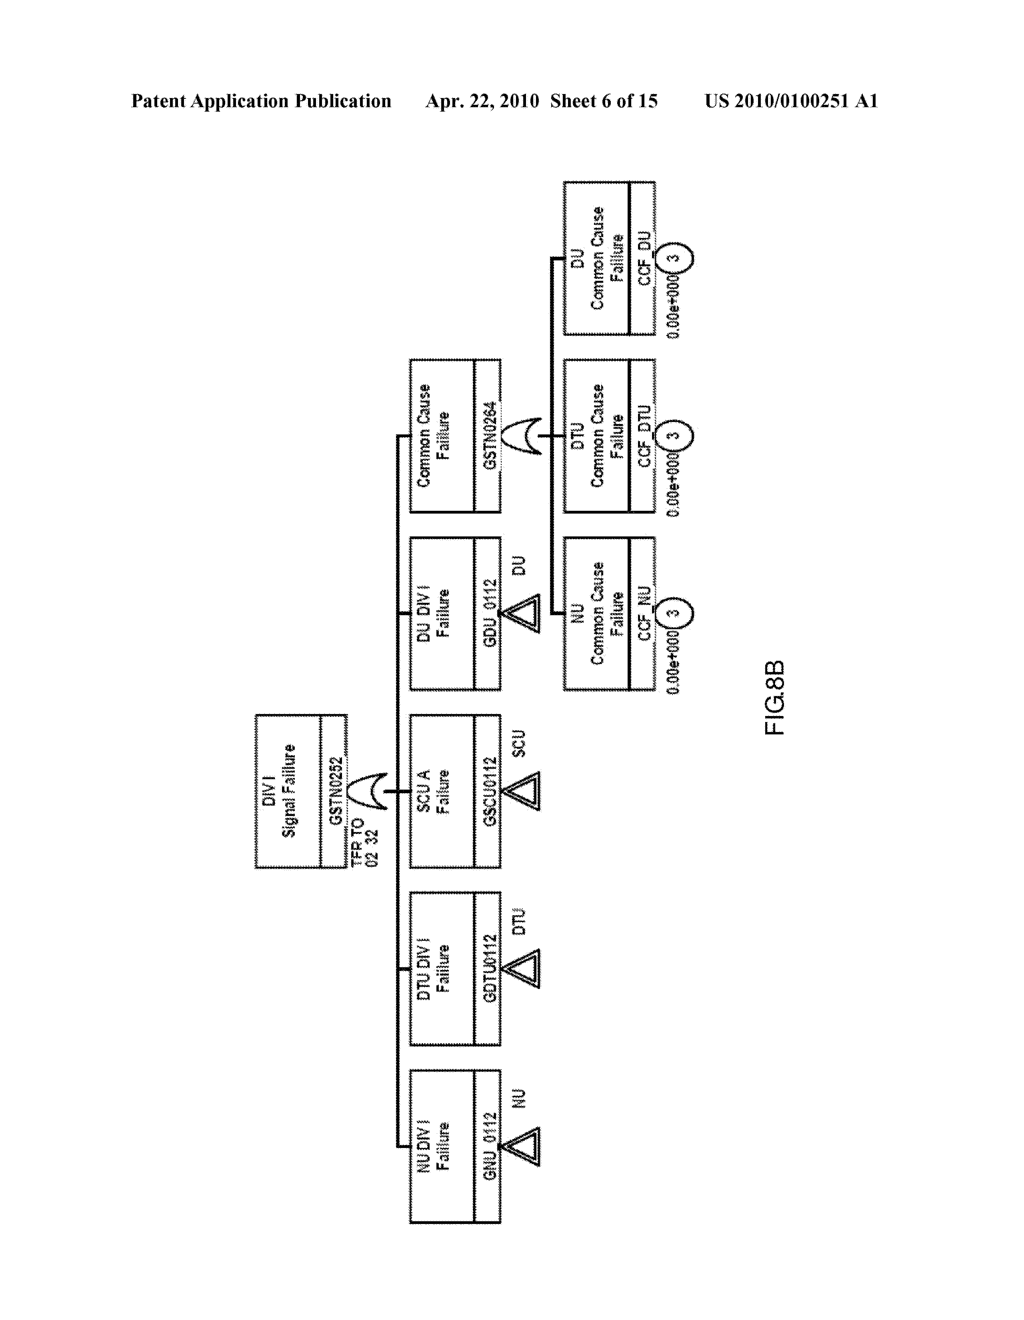 Fault Tree Analysis System For The Instrument Control Process Nuclear Power Plant Circuit Diagram With Advanced Boiling Water Reactor Background Schematic